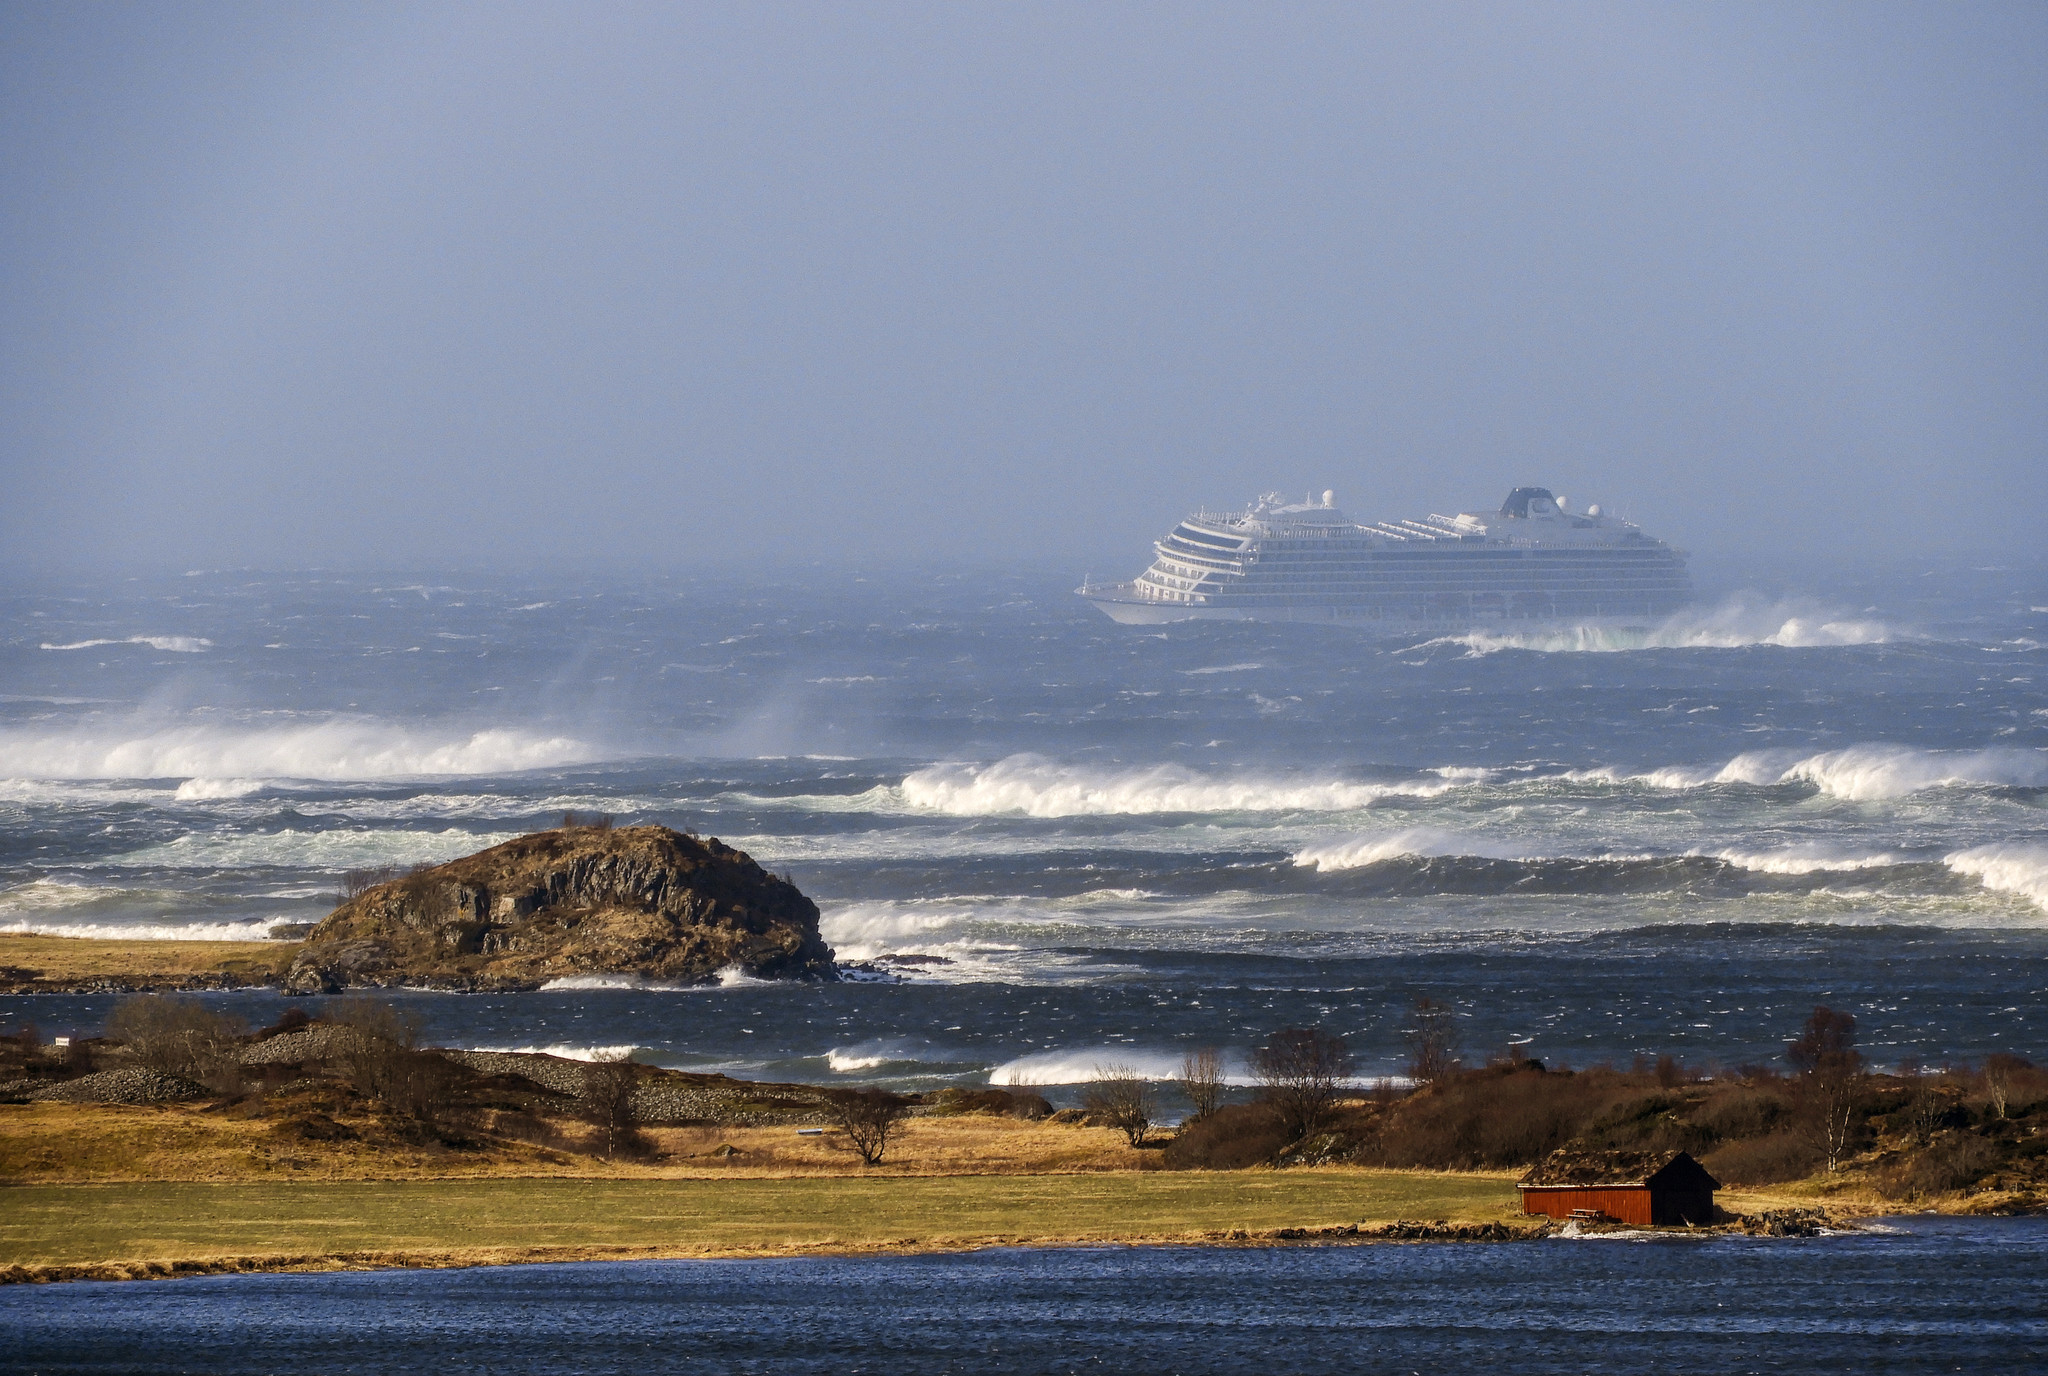 Passengers on board Norway cruise ship recount sweeping waters, tornado-like winds